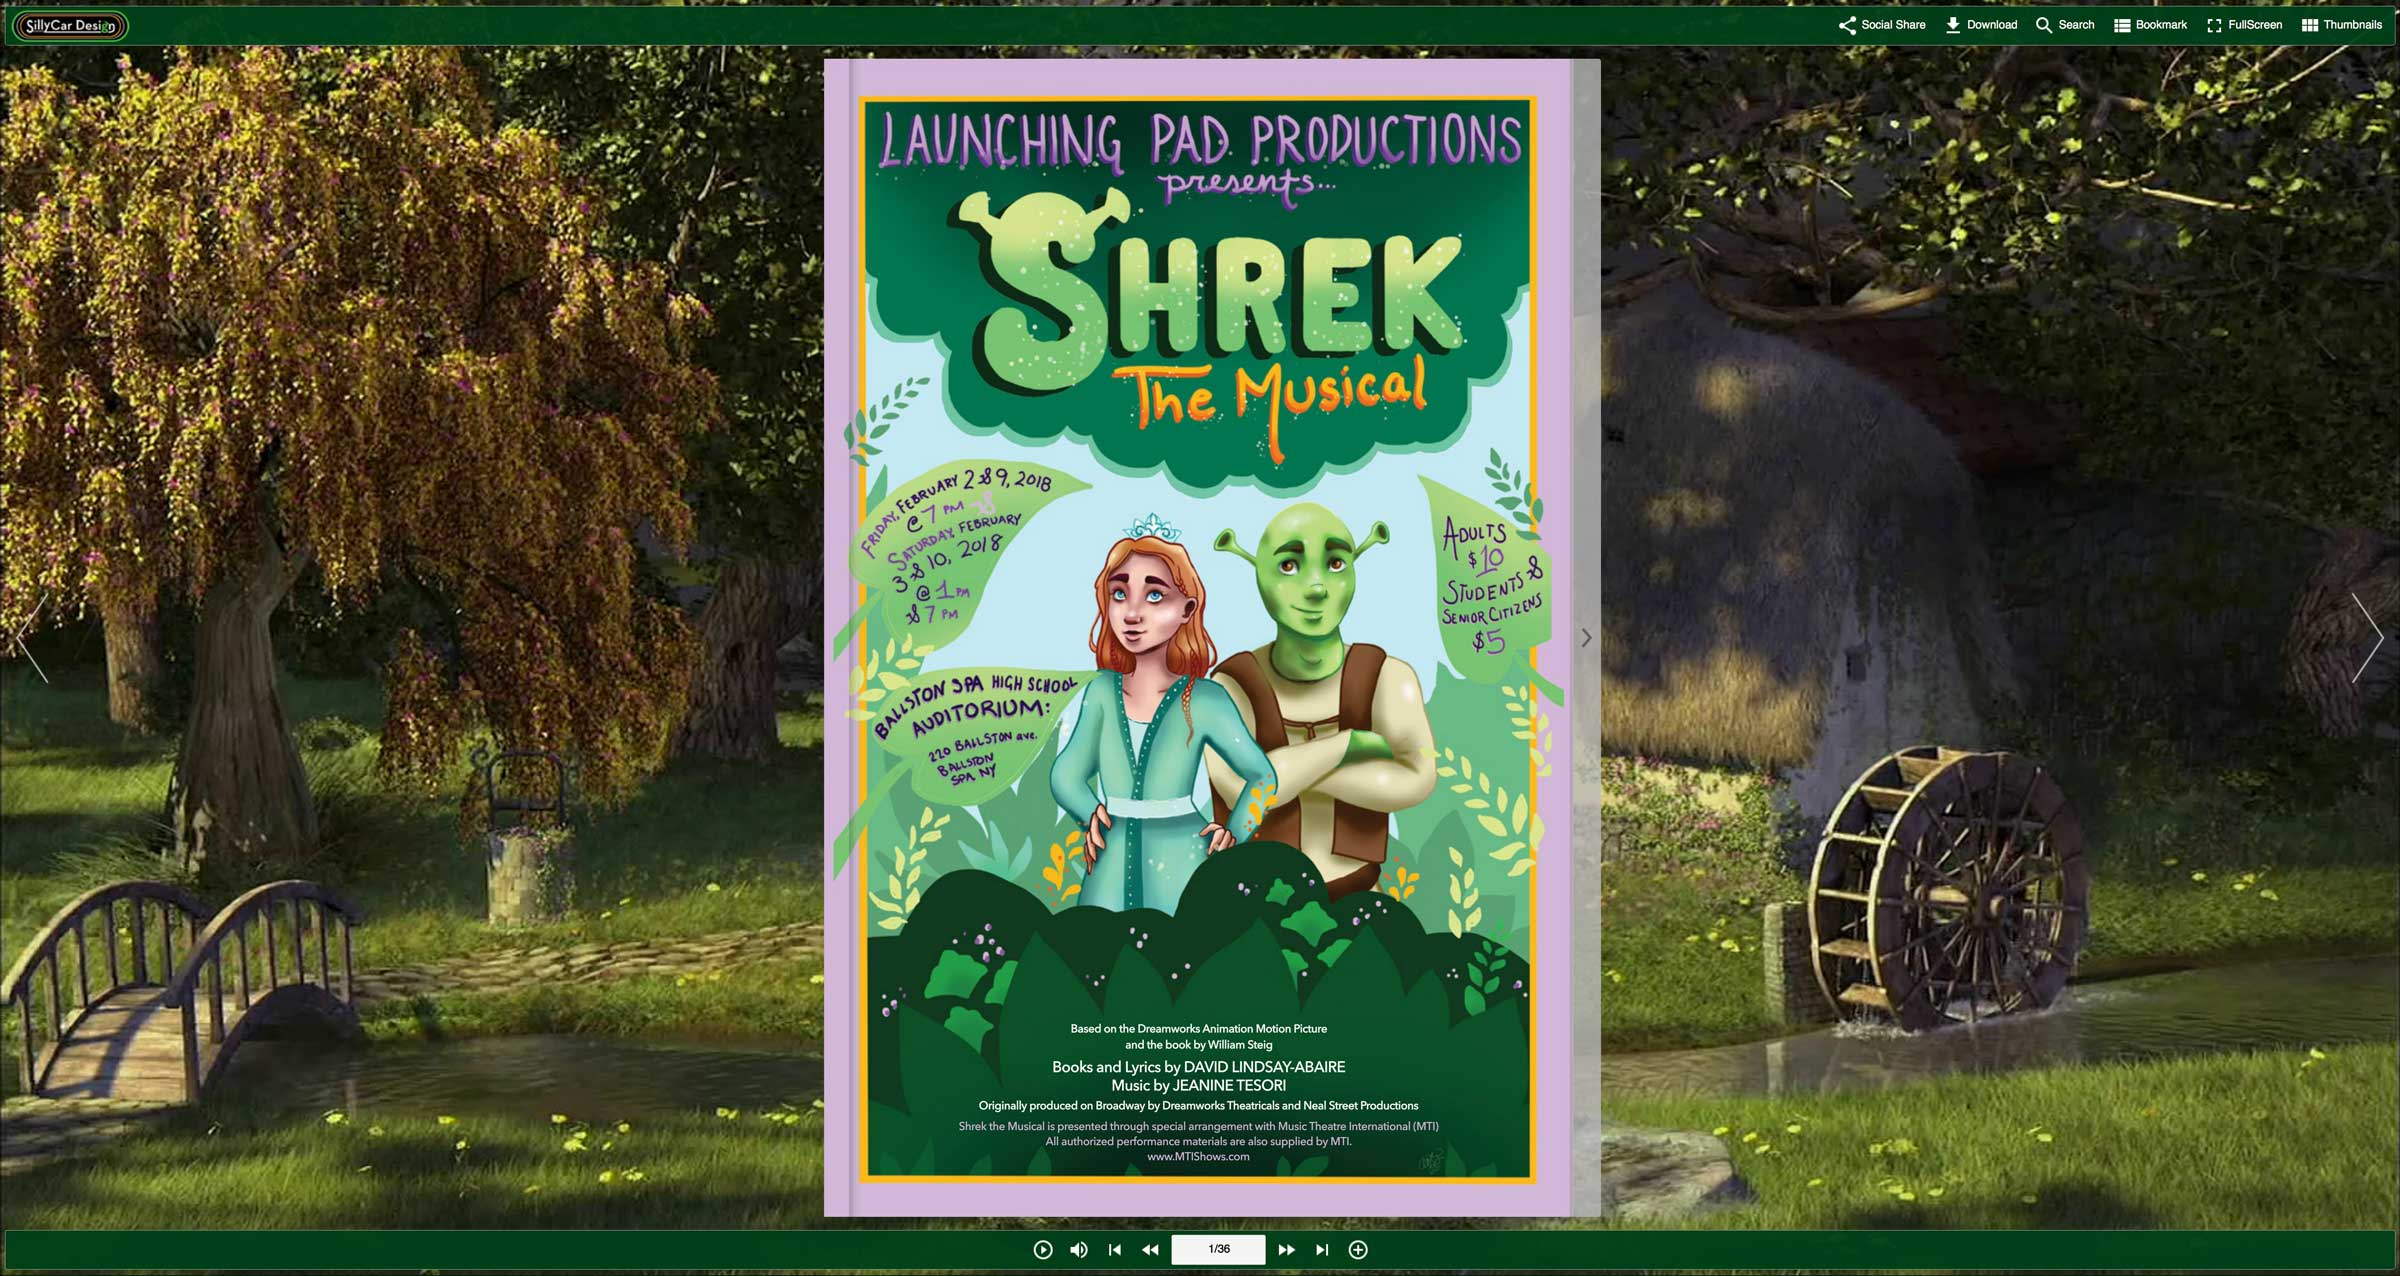 Image of Launching Pad Productions Shrek the Musical Playbill online flip book version.